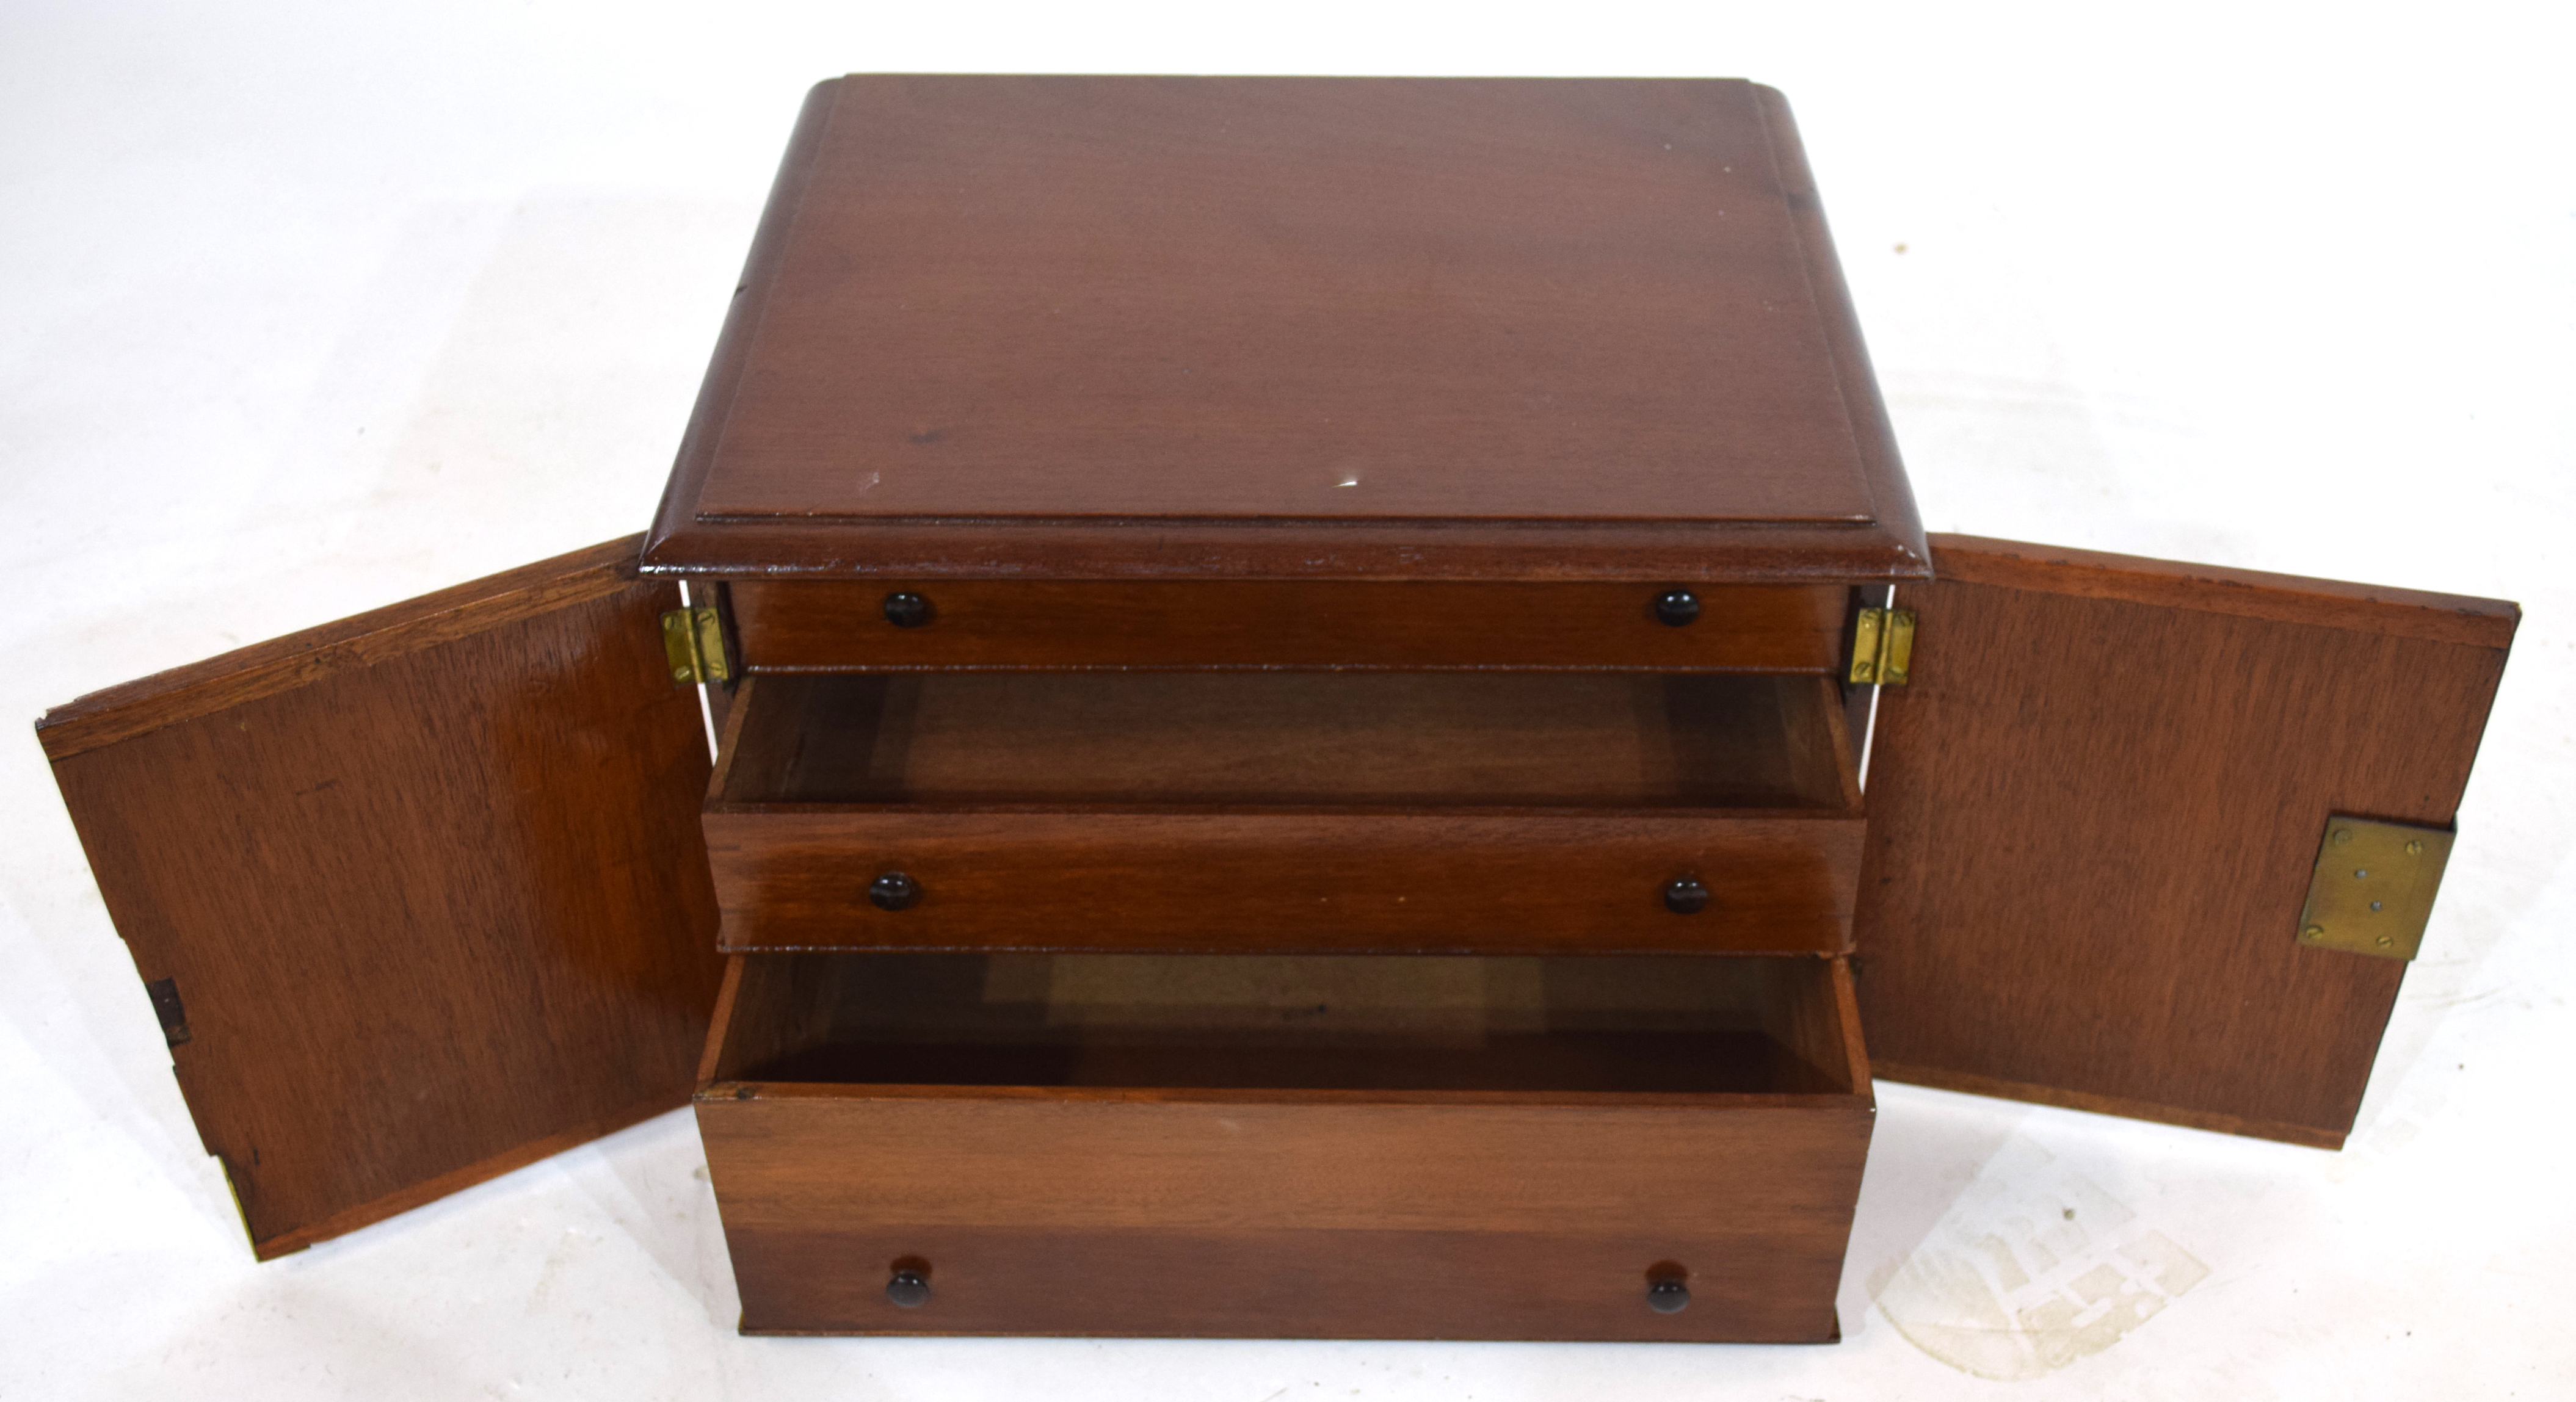 Late 19th/early 20th century hardwood table top cabinet with two doors opening to an interior with - Image 3 of 3